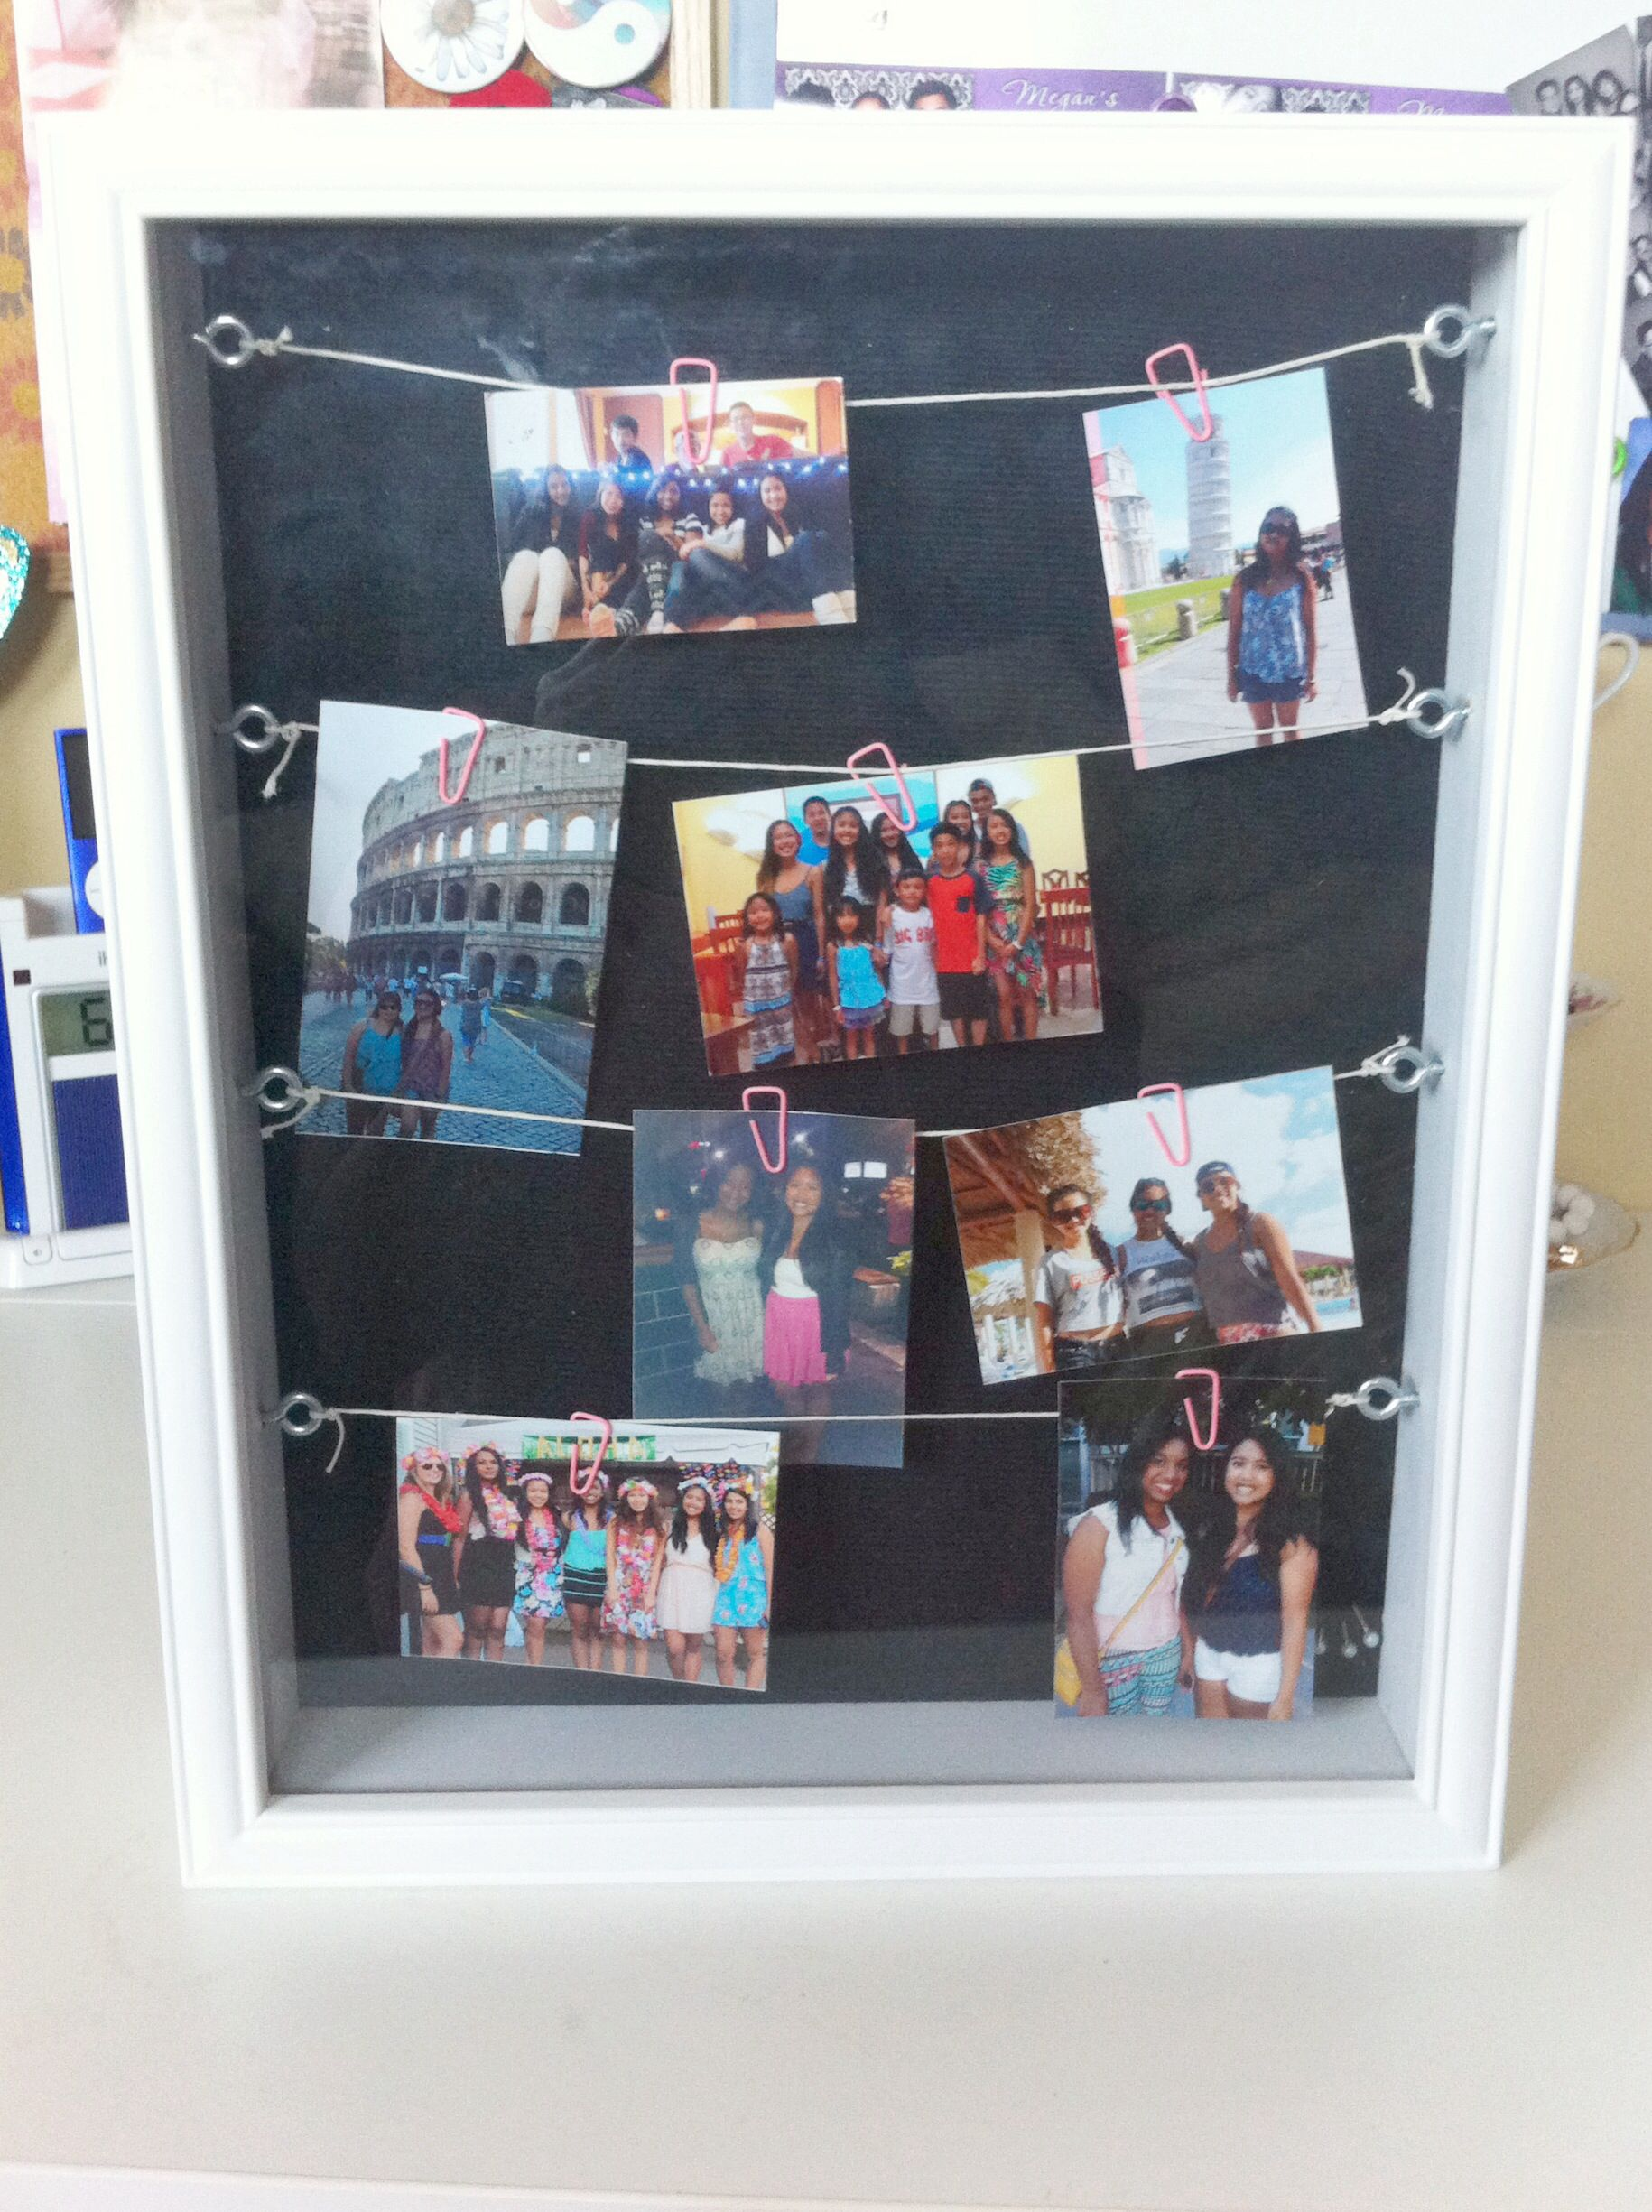 shadow box picture frame supplies michaels 11x14 shadow box 30 braiding string 3 - Michaels 11x14 Frame